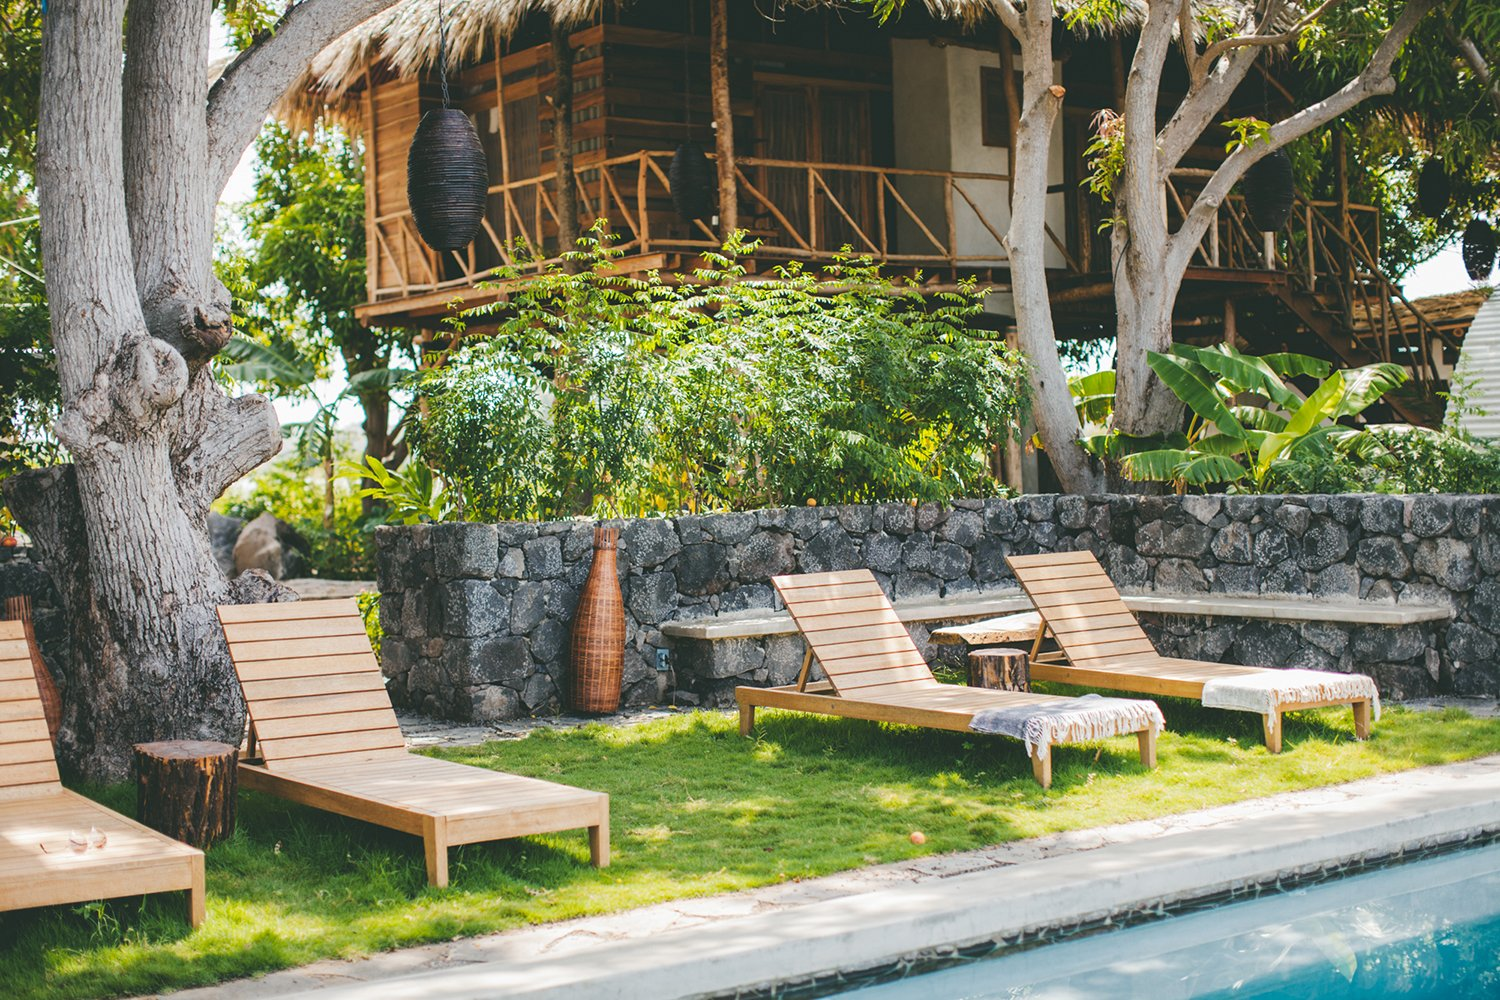 Outdoor, Small Pools, Tubs, Shower, Grass, Trees, and Stone Fences, Wall The property features many such traditional craft elements native to Nicaragua; rancho builders from the La Paz Centro region of Nicaragua, architects and engineers from Granada, and craftspeople from all over the country helped build the property, creating everything from light fixtures to stone sinks. Andrew and Kristin enlisted landscape expertise from Chris Shanks, a permaculture educator based in Ometepe, who helped educate the duo on practical plants to grow for teas and edible consumption. Accessory designs like white bed linens with colorful throws are a work of Daina Platais of local shop Amano.  Photo 8 of 12 in Isleta El Espino: A Three-Room Eco Hotel on Lake Nicaragua